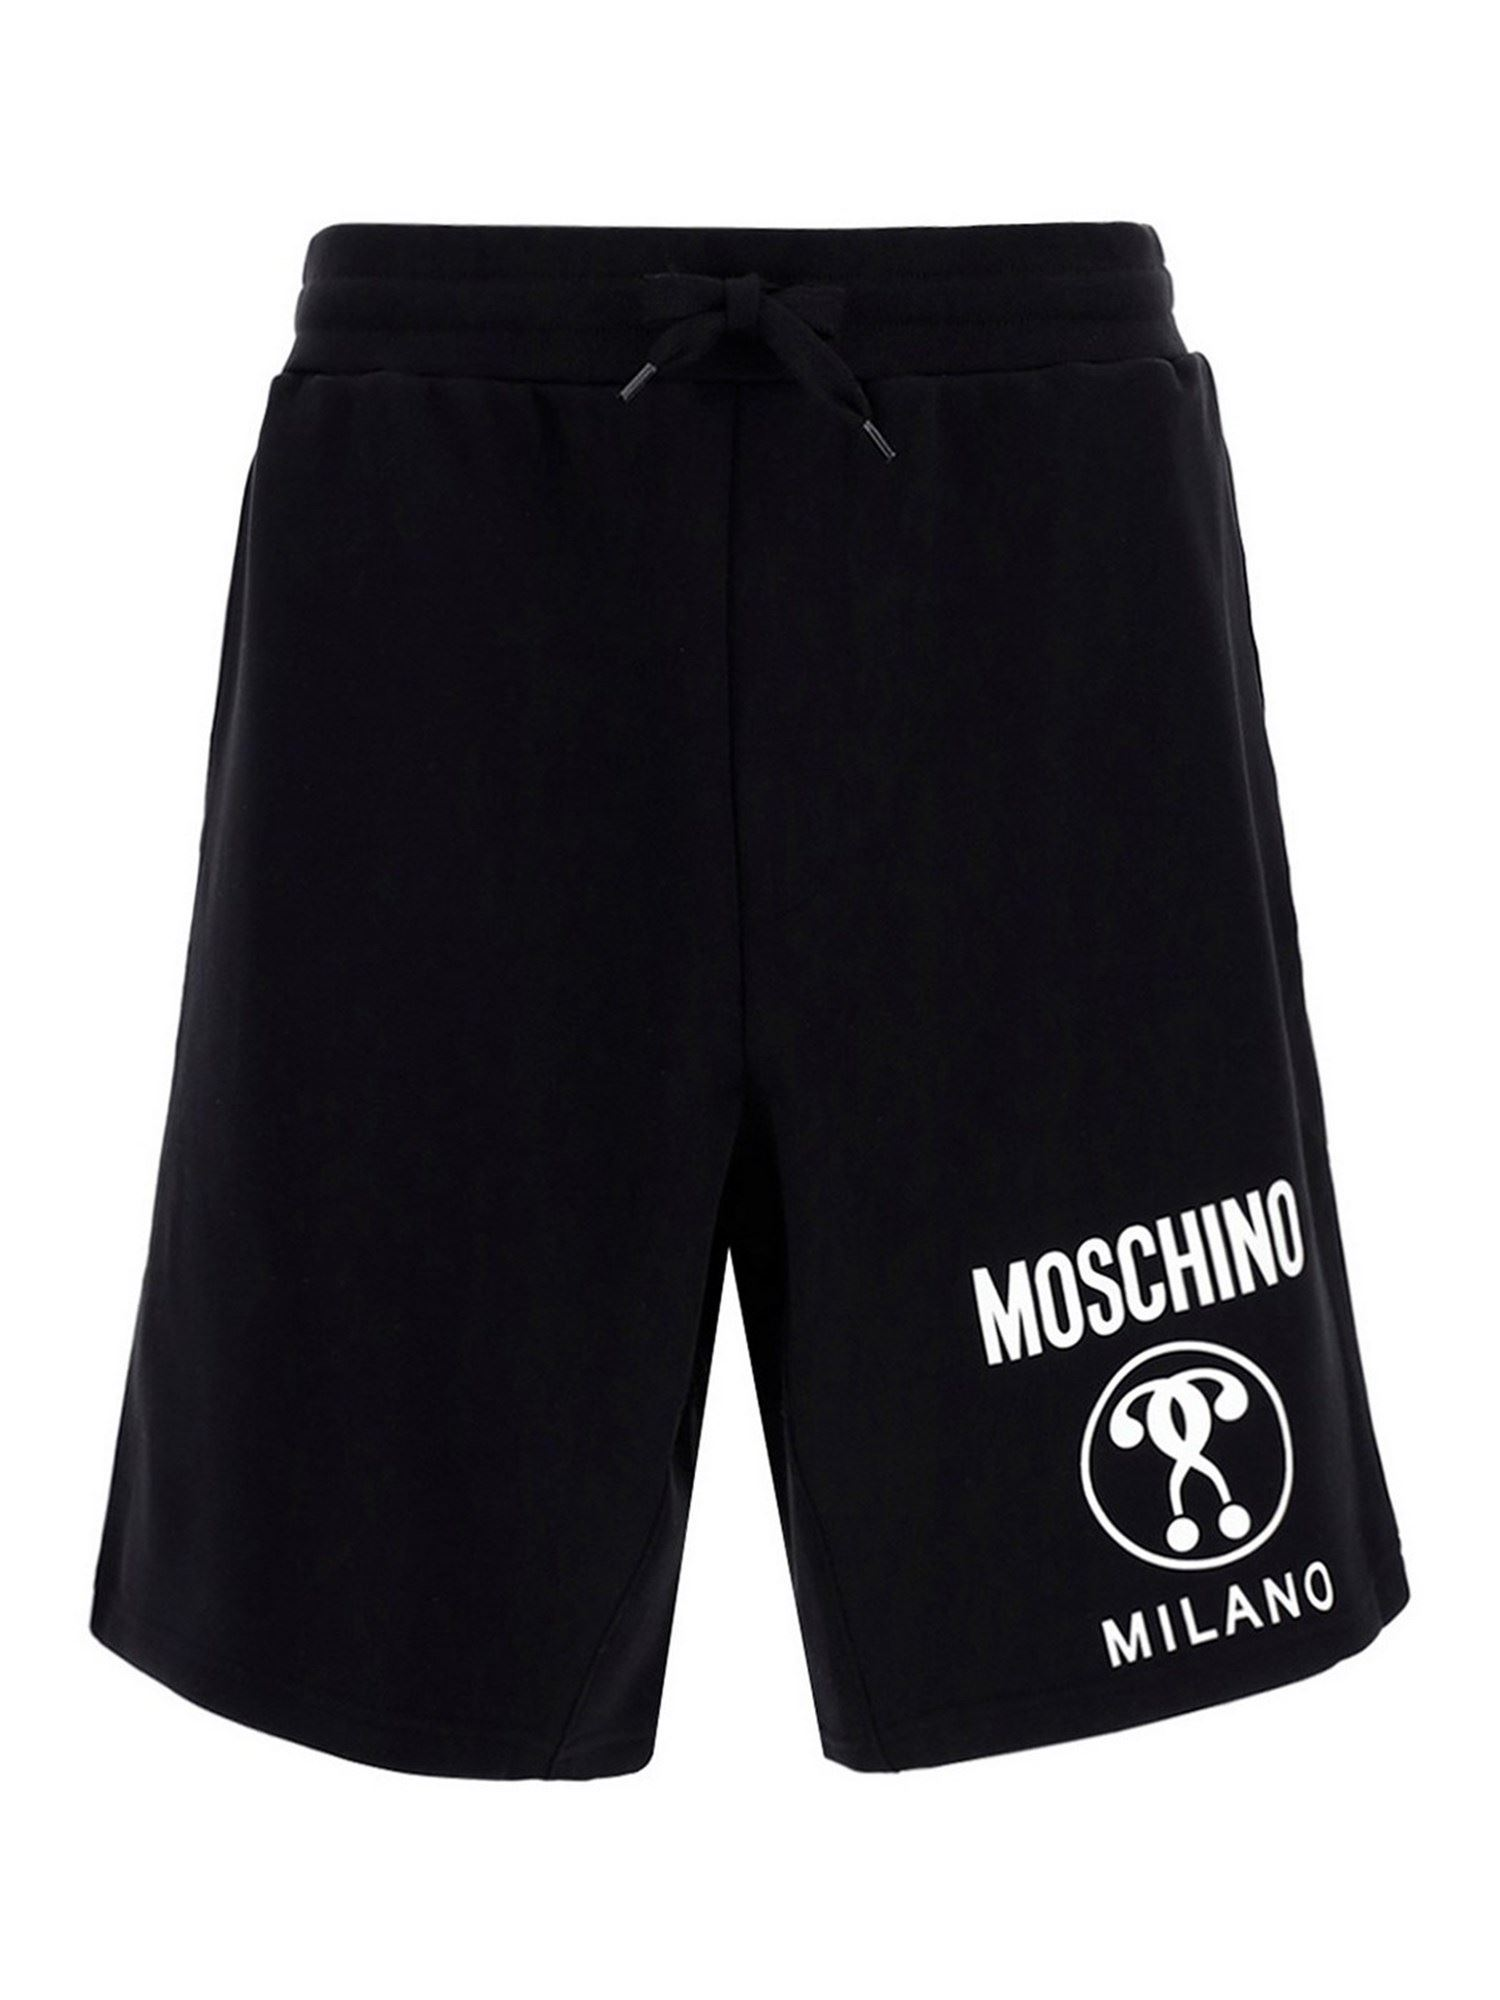 Moschino DOUBLE QUESTION MARK SHORTS IN BLACK